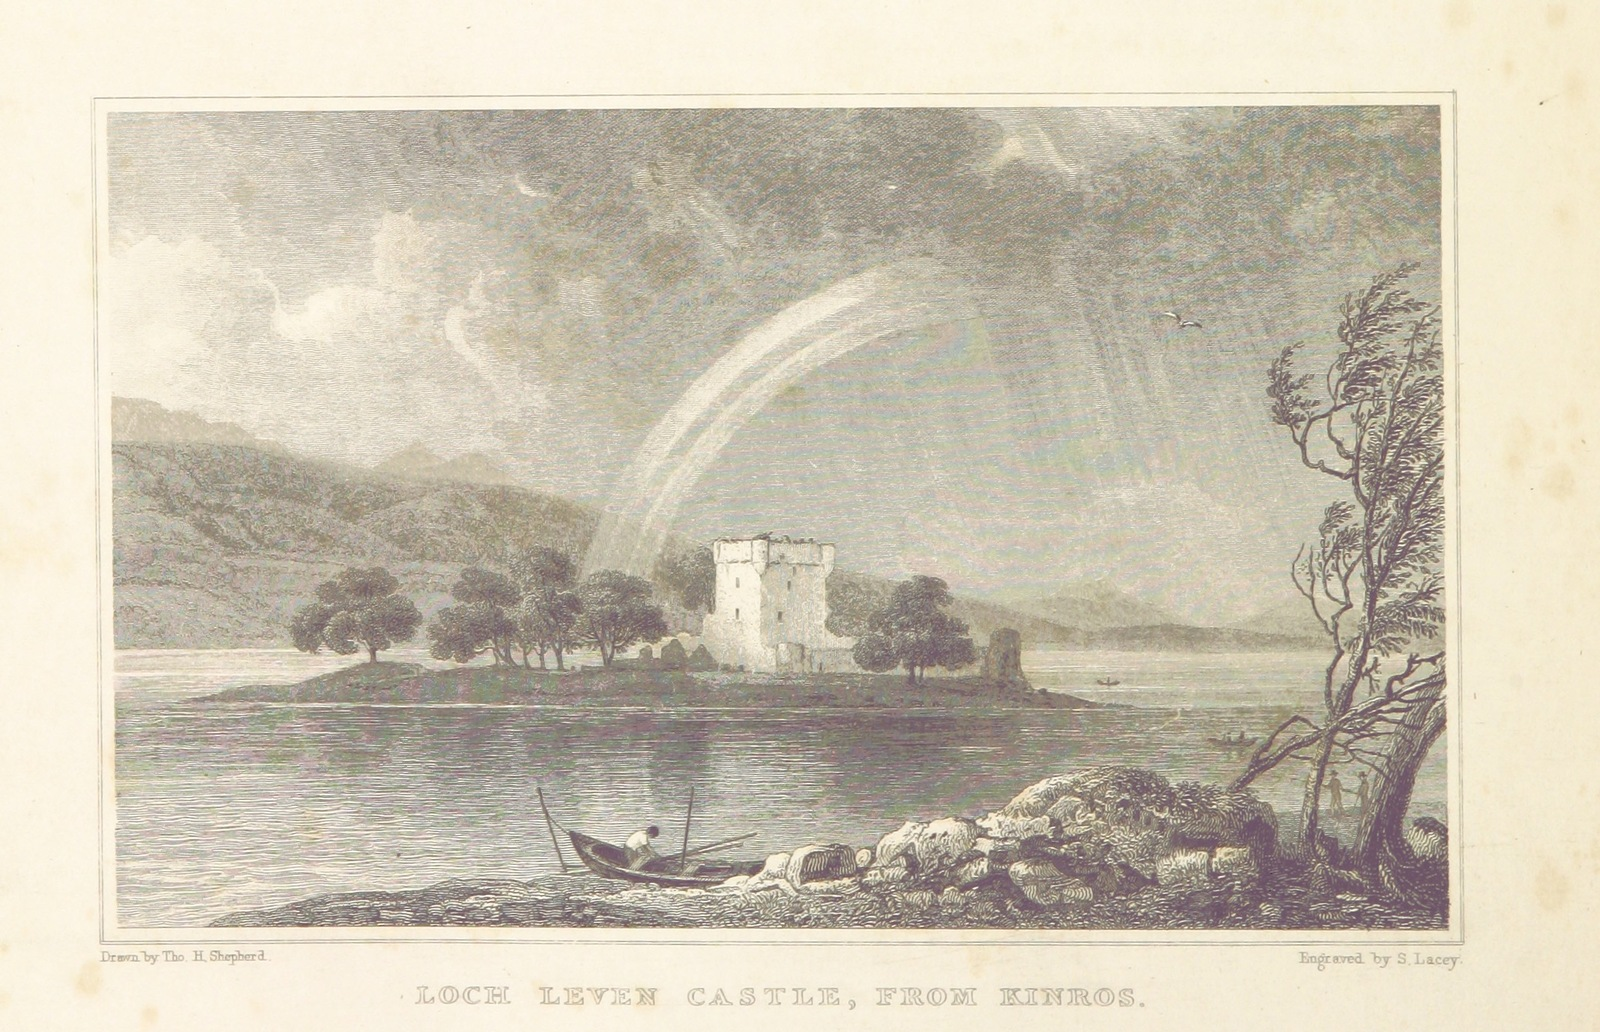 """Castle Island, Loch Leven, near Kinross, Scotland from """"Modern Athens, displayed in a series of views; or, Edinburgh in the nineteenth century; exhibiting the whole of the new buildings, modern improvements, antiquities, & picturesque scenery of the Scottish metropolis & its environs, from original drawings by Mr. T. H. Shepherd. With historical, topographical & critical illustrations [by John Britton]"""""""